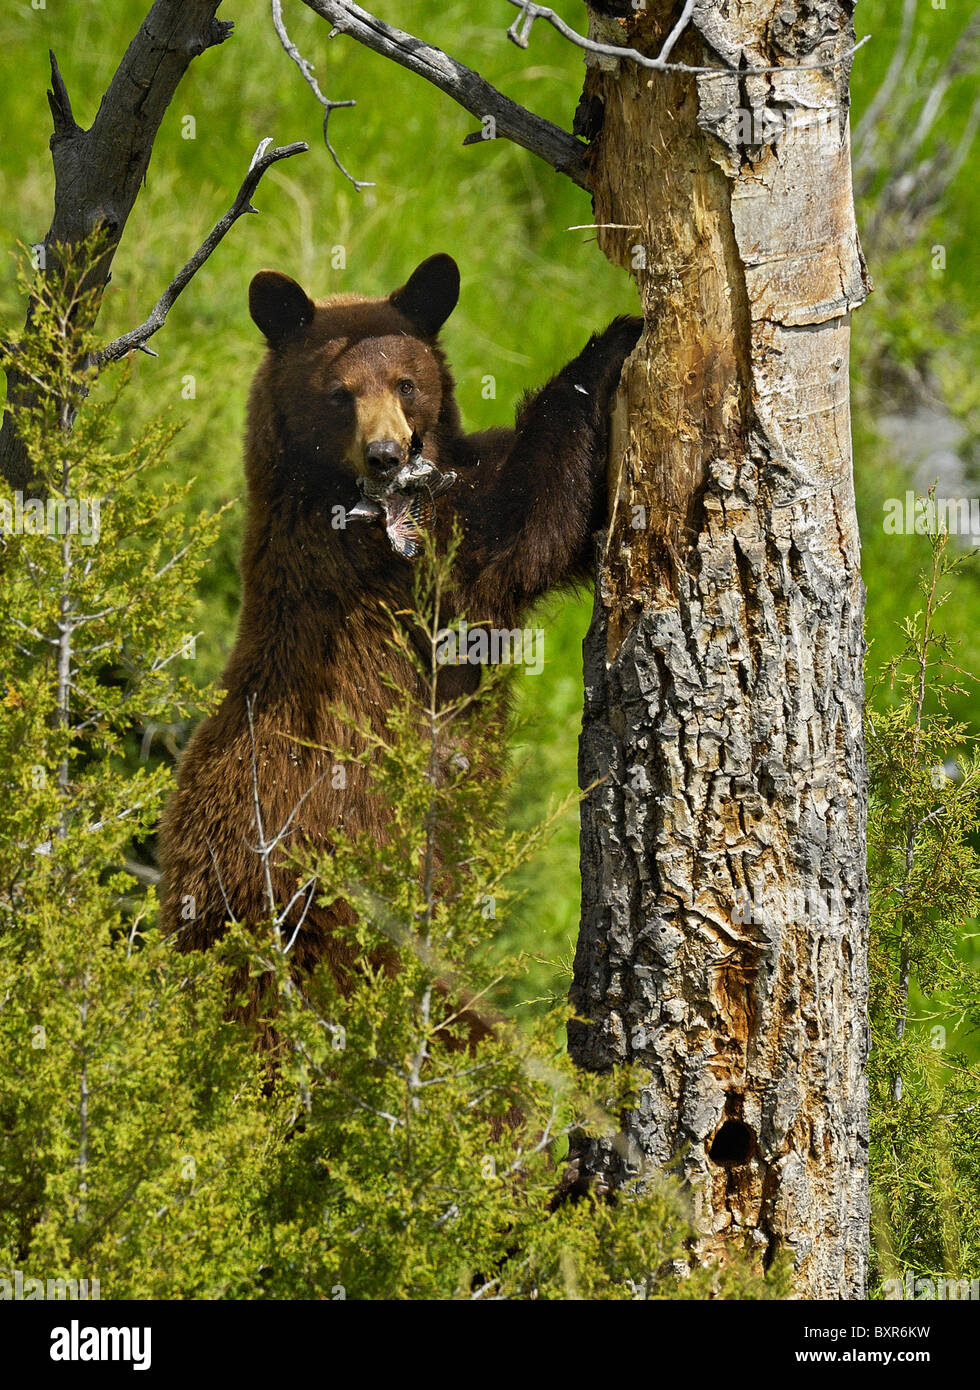 Cinnamon-colored Black Bear excavates baby bird from cavity nest of woodpeckers (Northern Flicker). - Stock Image